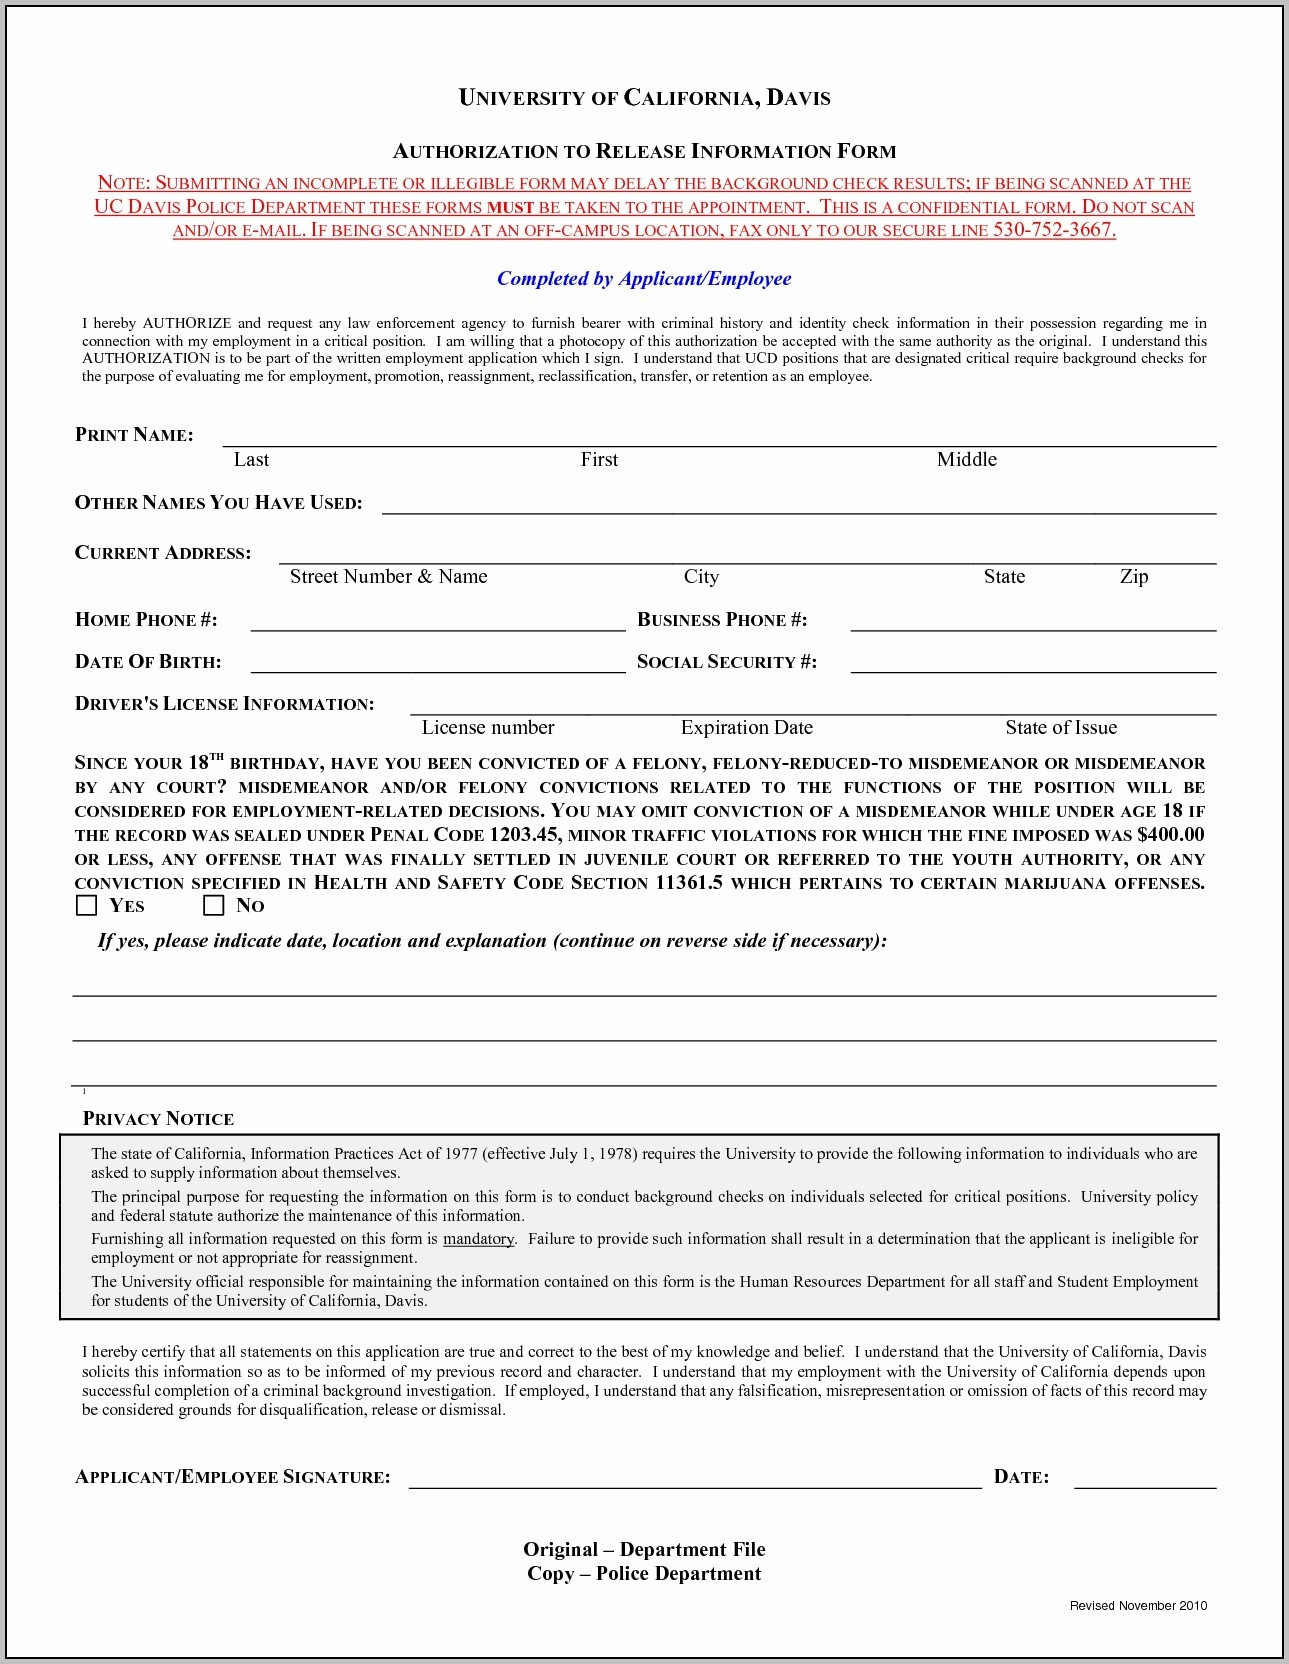 Background Check Authorization Form Template   Template Design Throughout Background Check Authorization Form Template